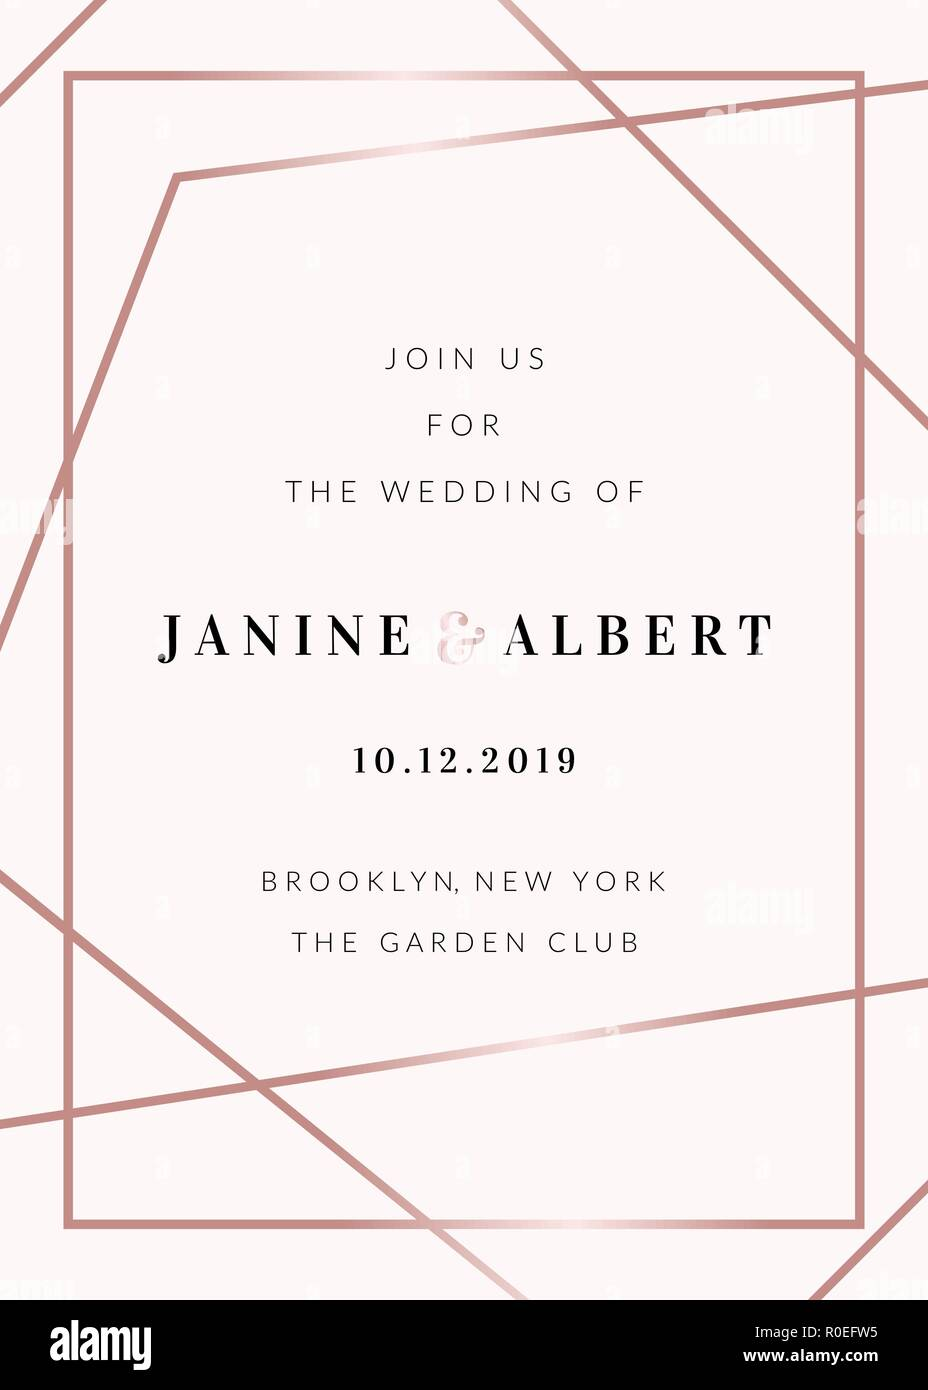 Wedding Invitation Template With Rose Gold Decorative Elements And